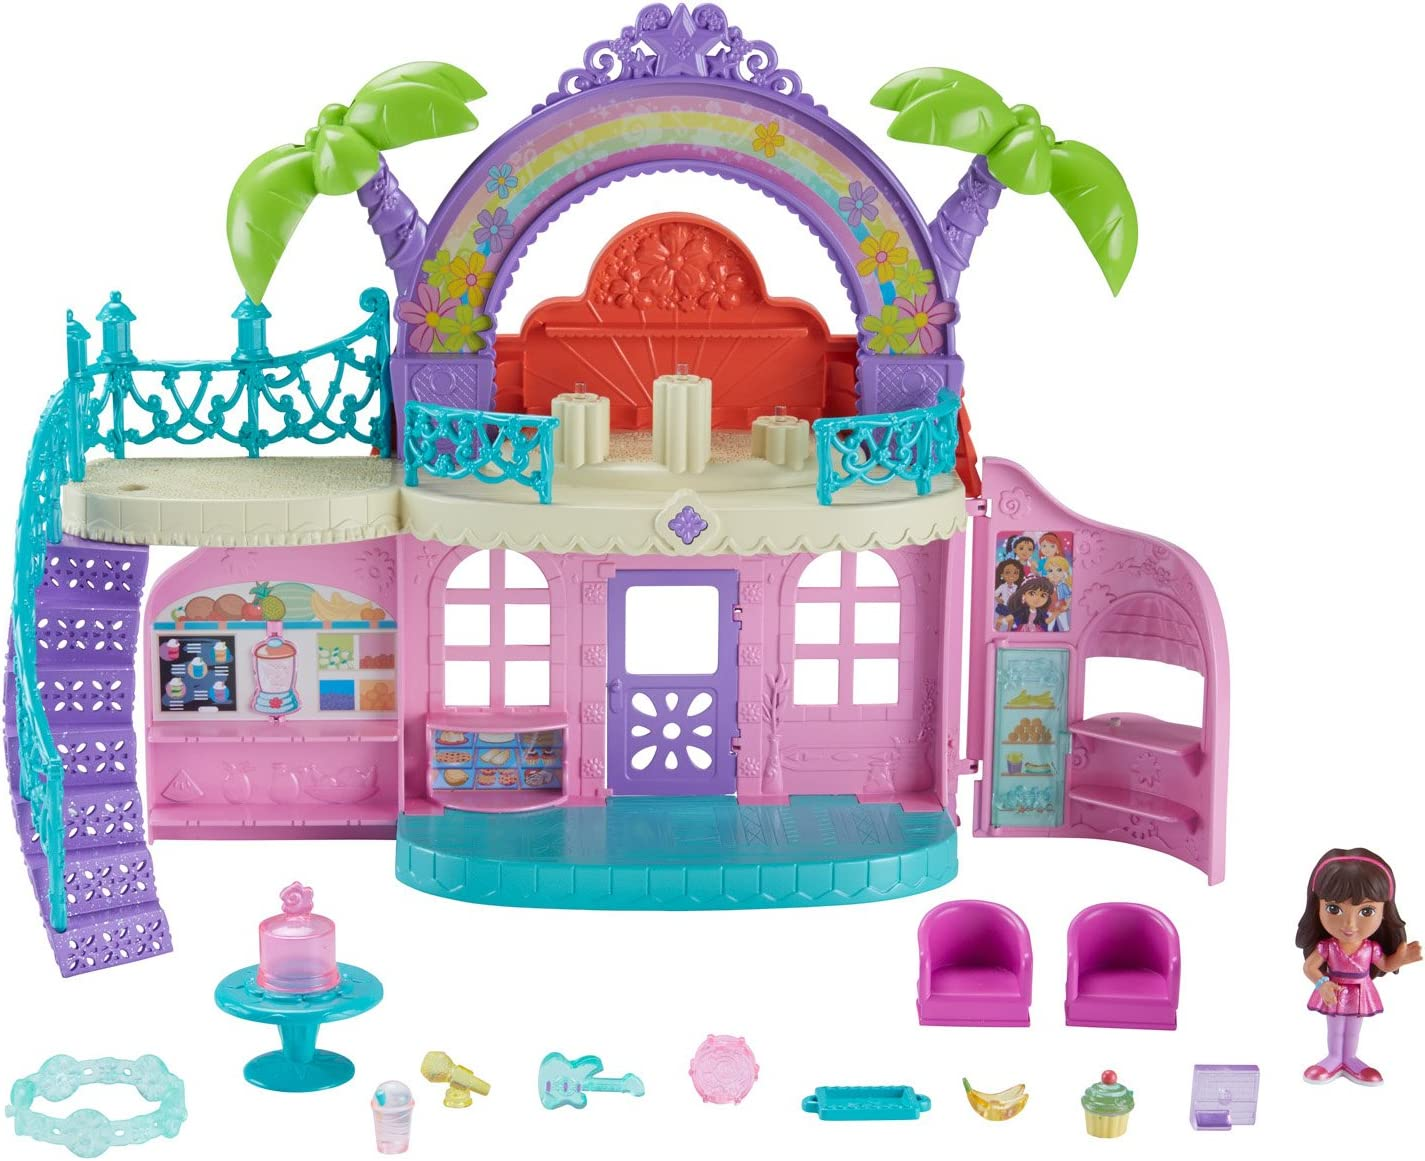 9 Best Fisher Price Dollhouse Reviews of 2021 15